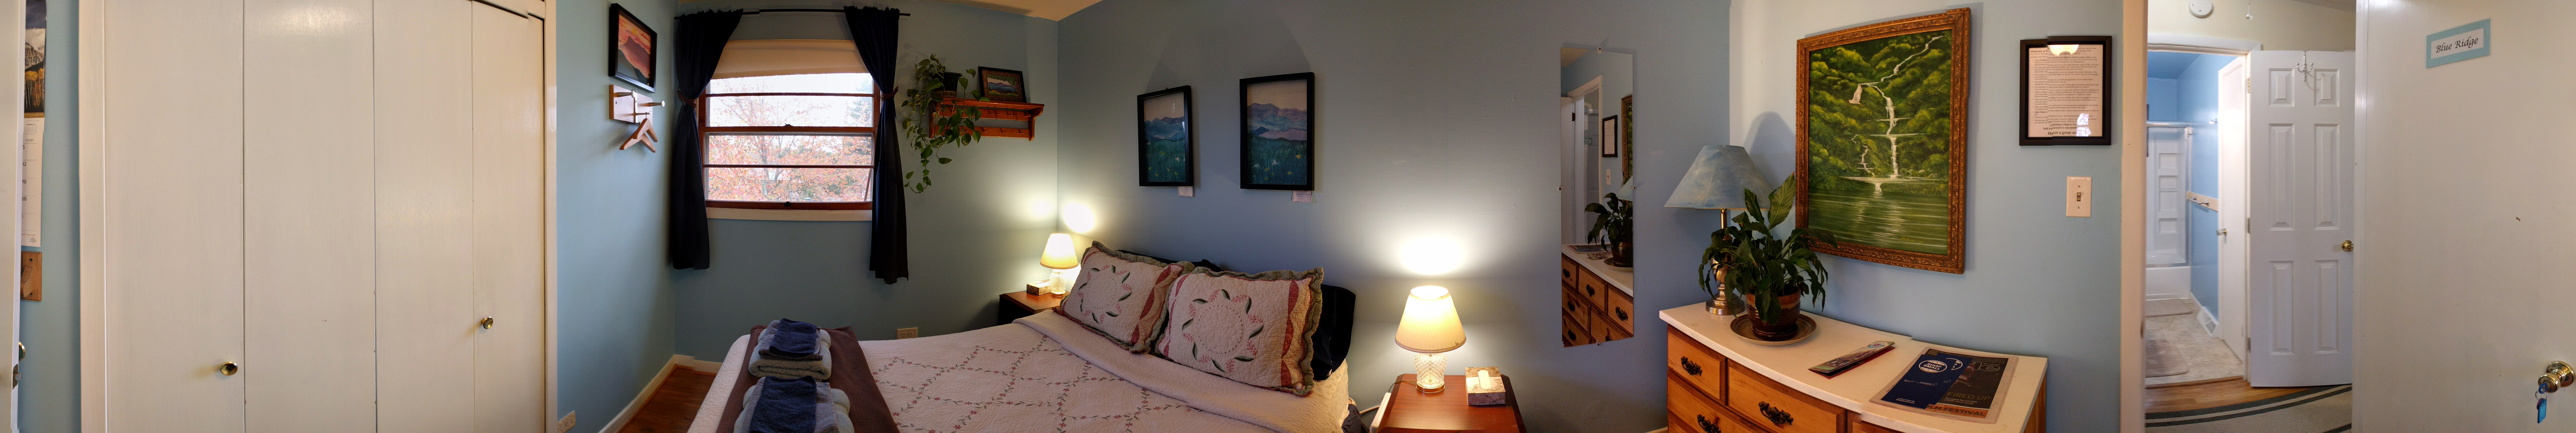 360 Degree view of the Blue Ridge Room at Fairhaven Guesrthouse